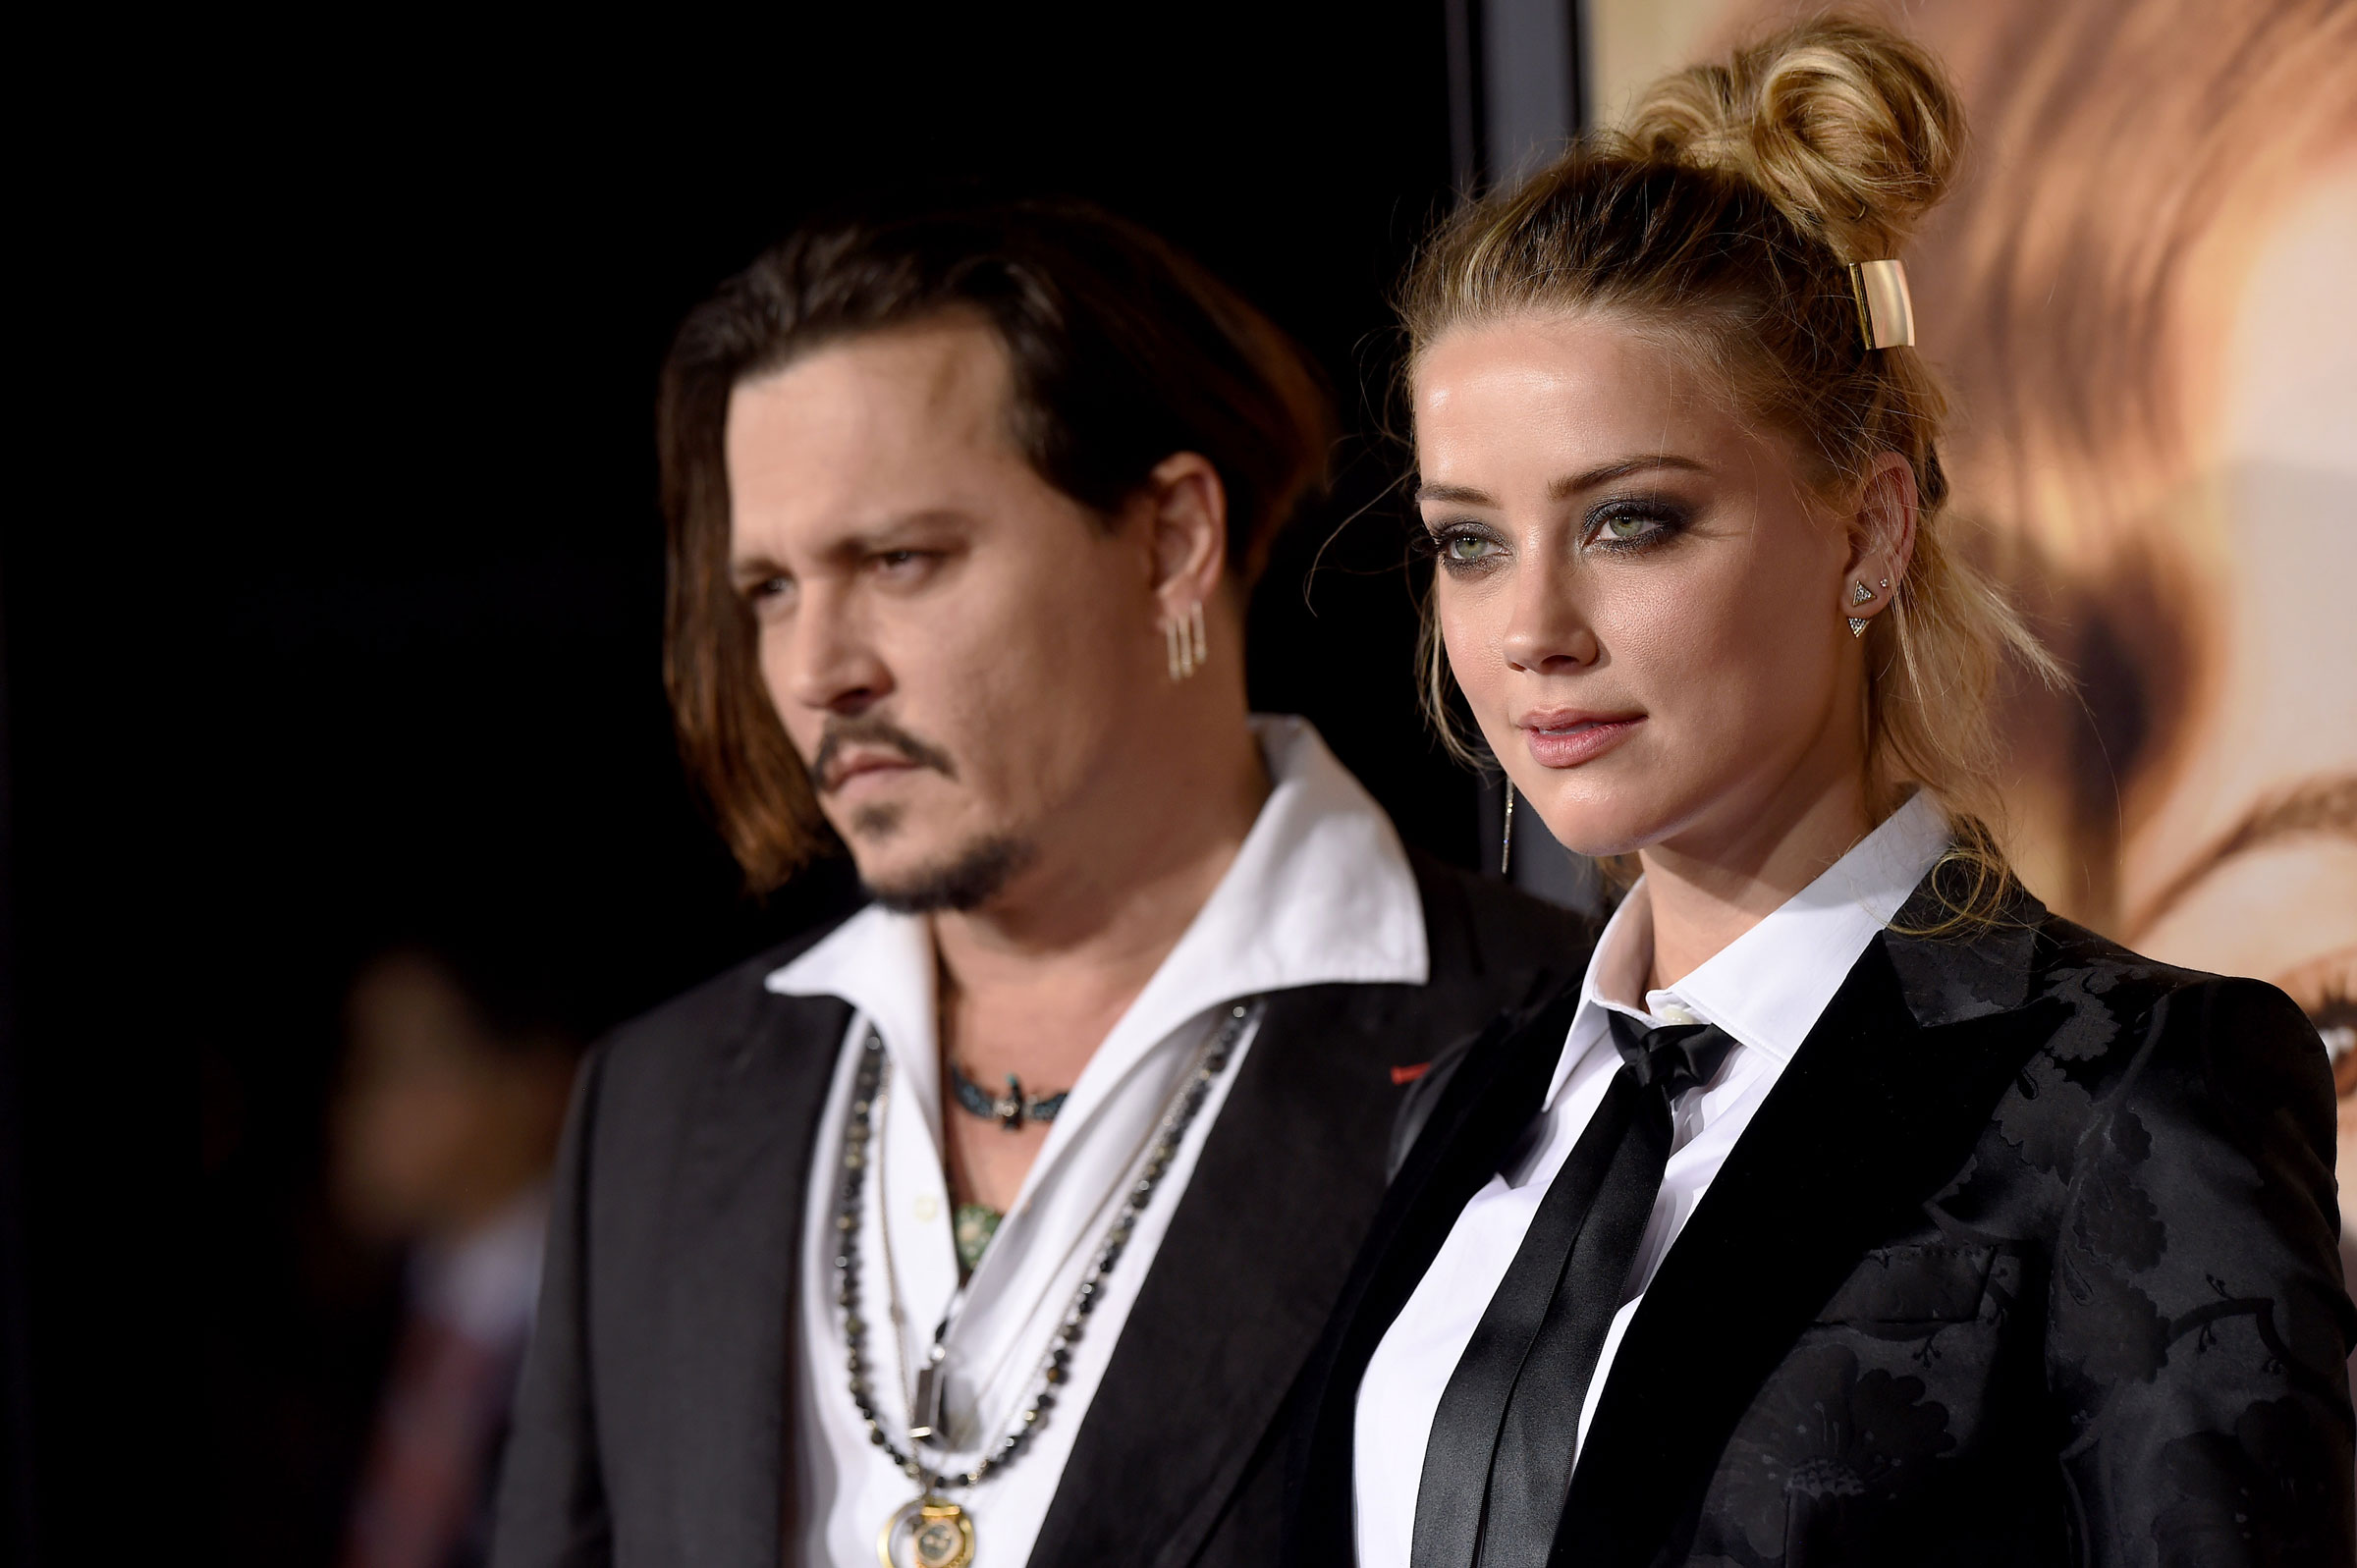 Former couple Johnny Depp and Amber Heard. PHOTO: REUTERS